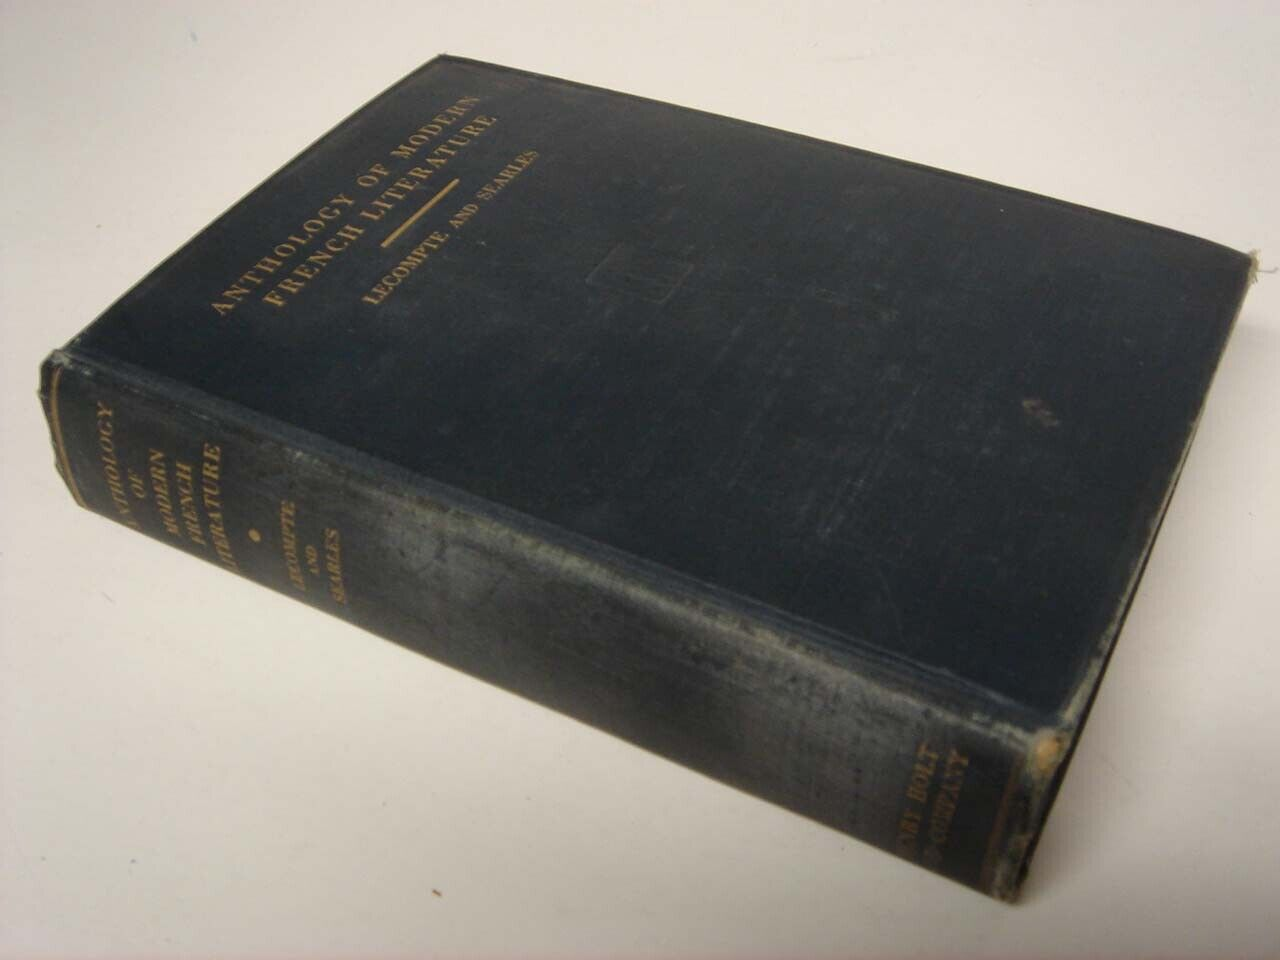 anthology of modern french literature 1931 lecompte and searles --- FRENCH ???